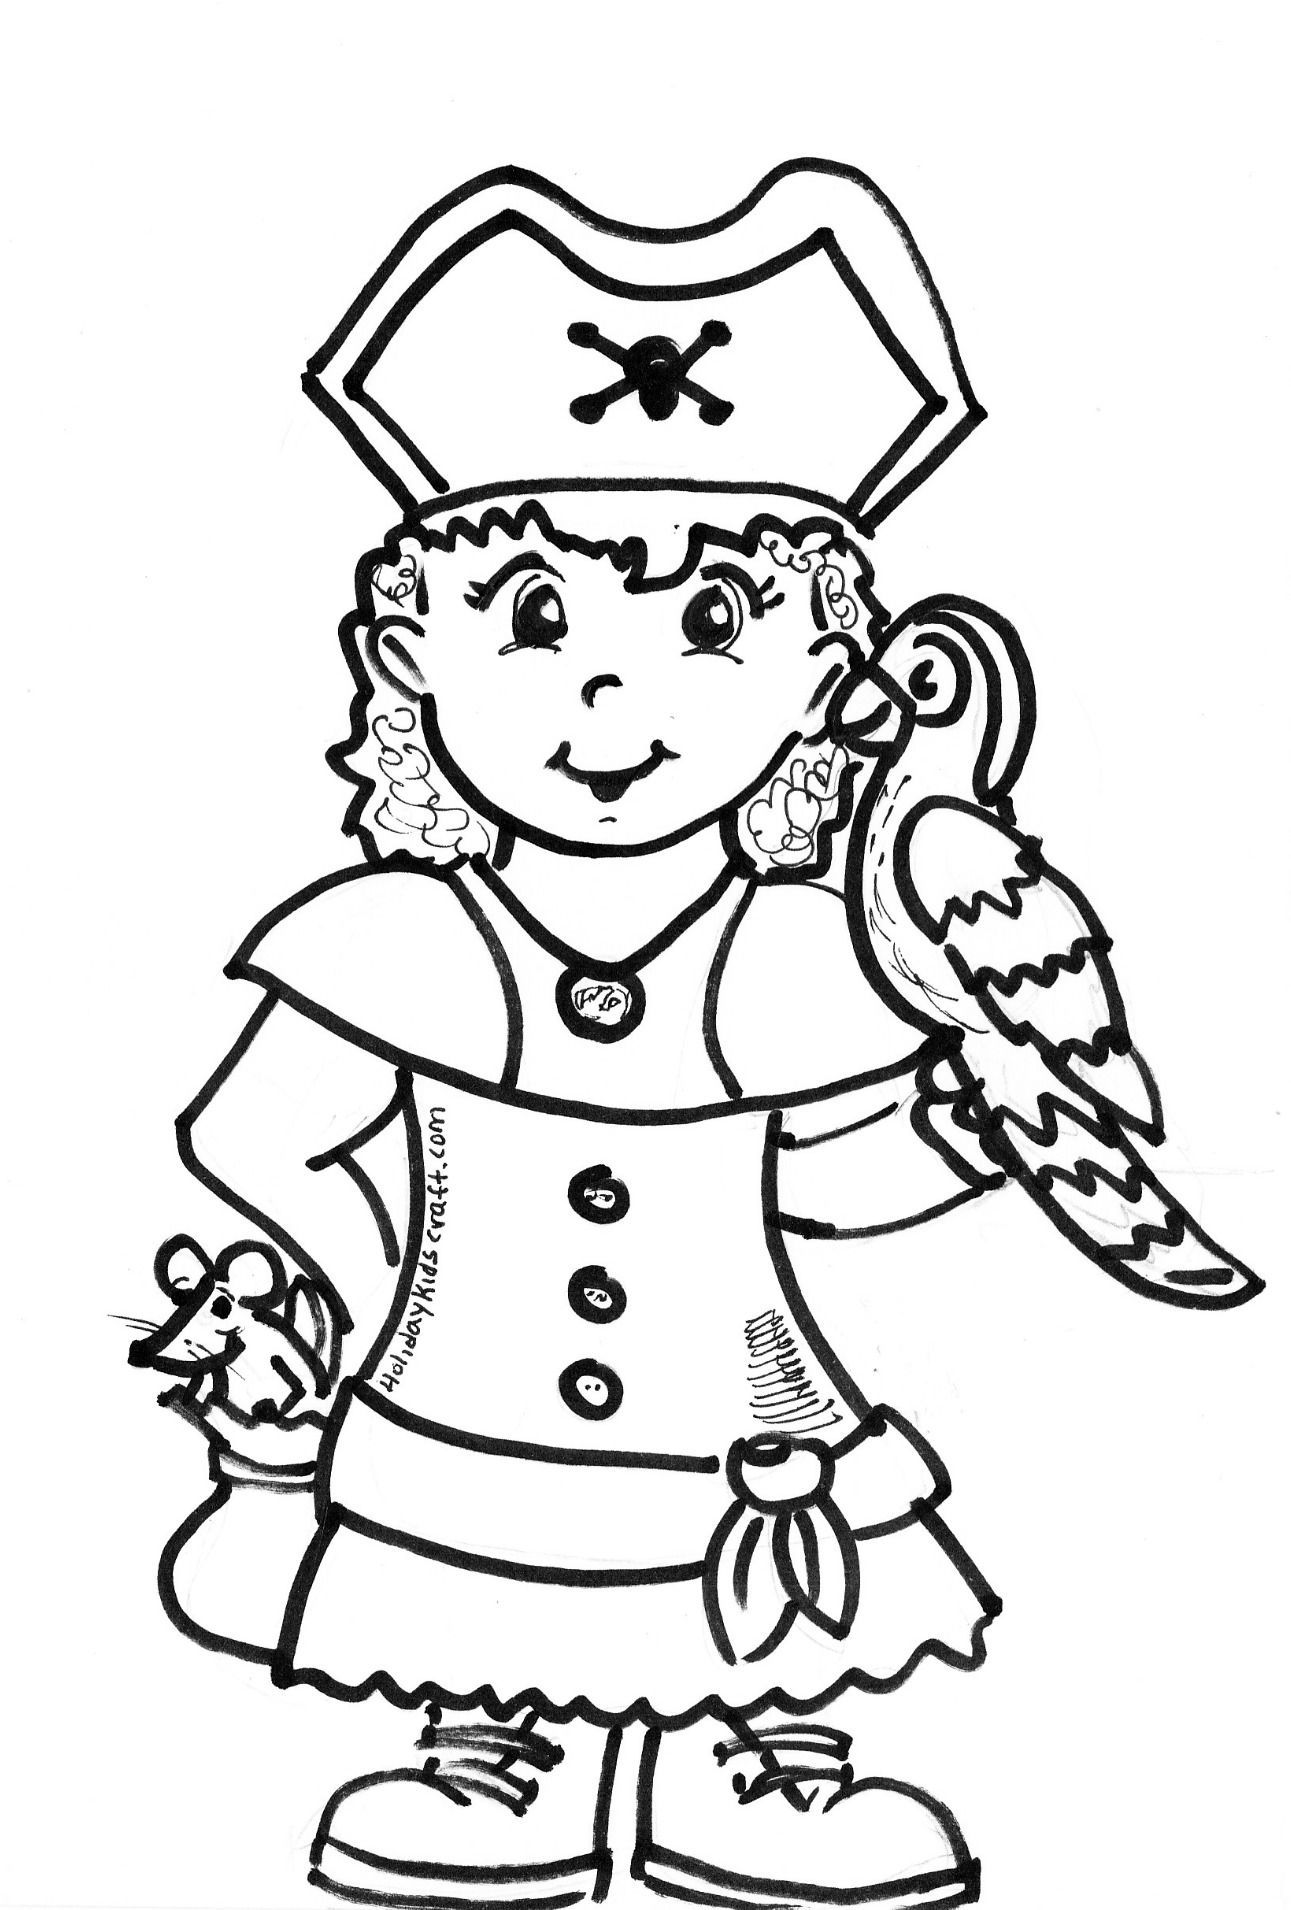 pirate coloring pages for preschool pirate color pages for kids pirate coloring pages pirate pages preschool for coloring